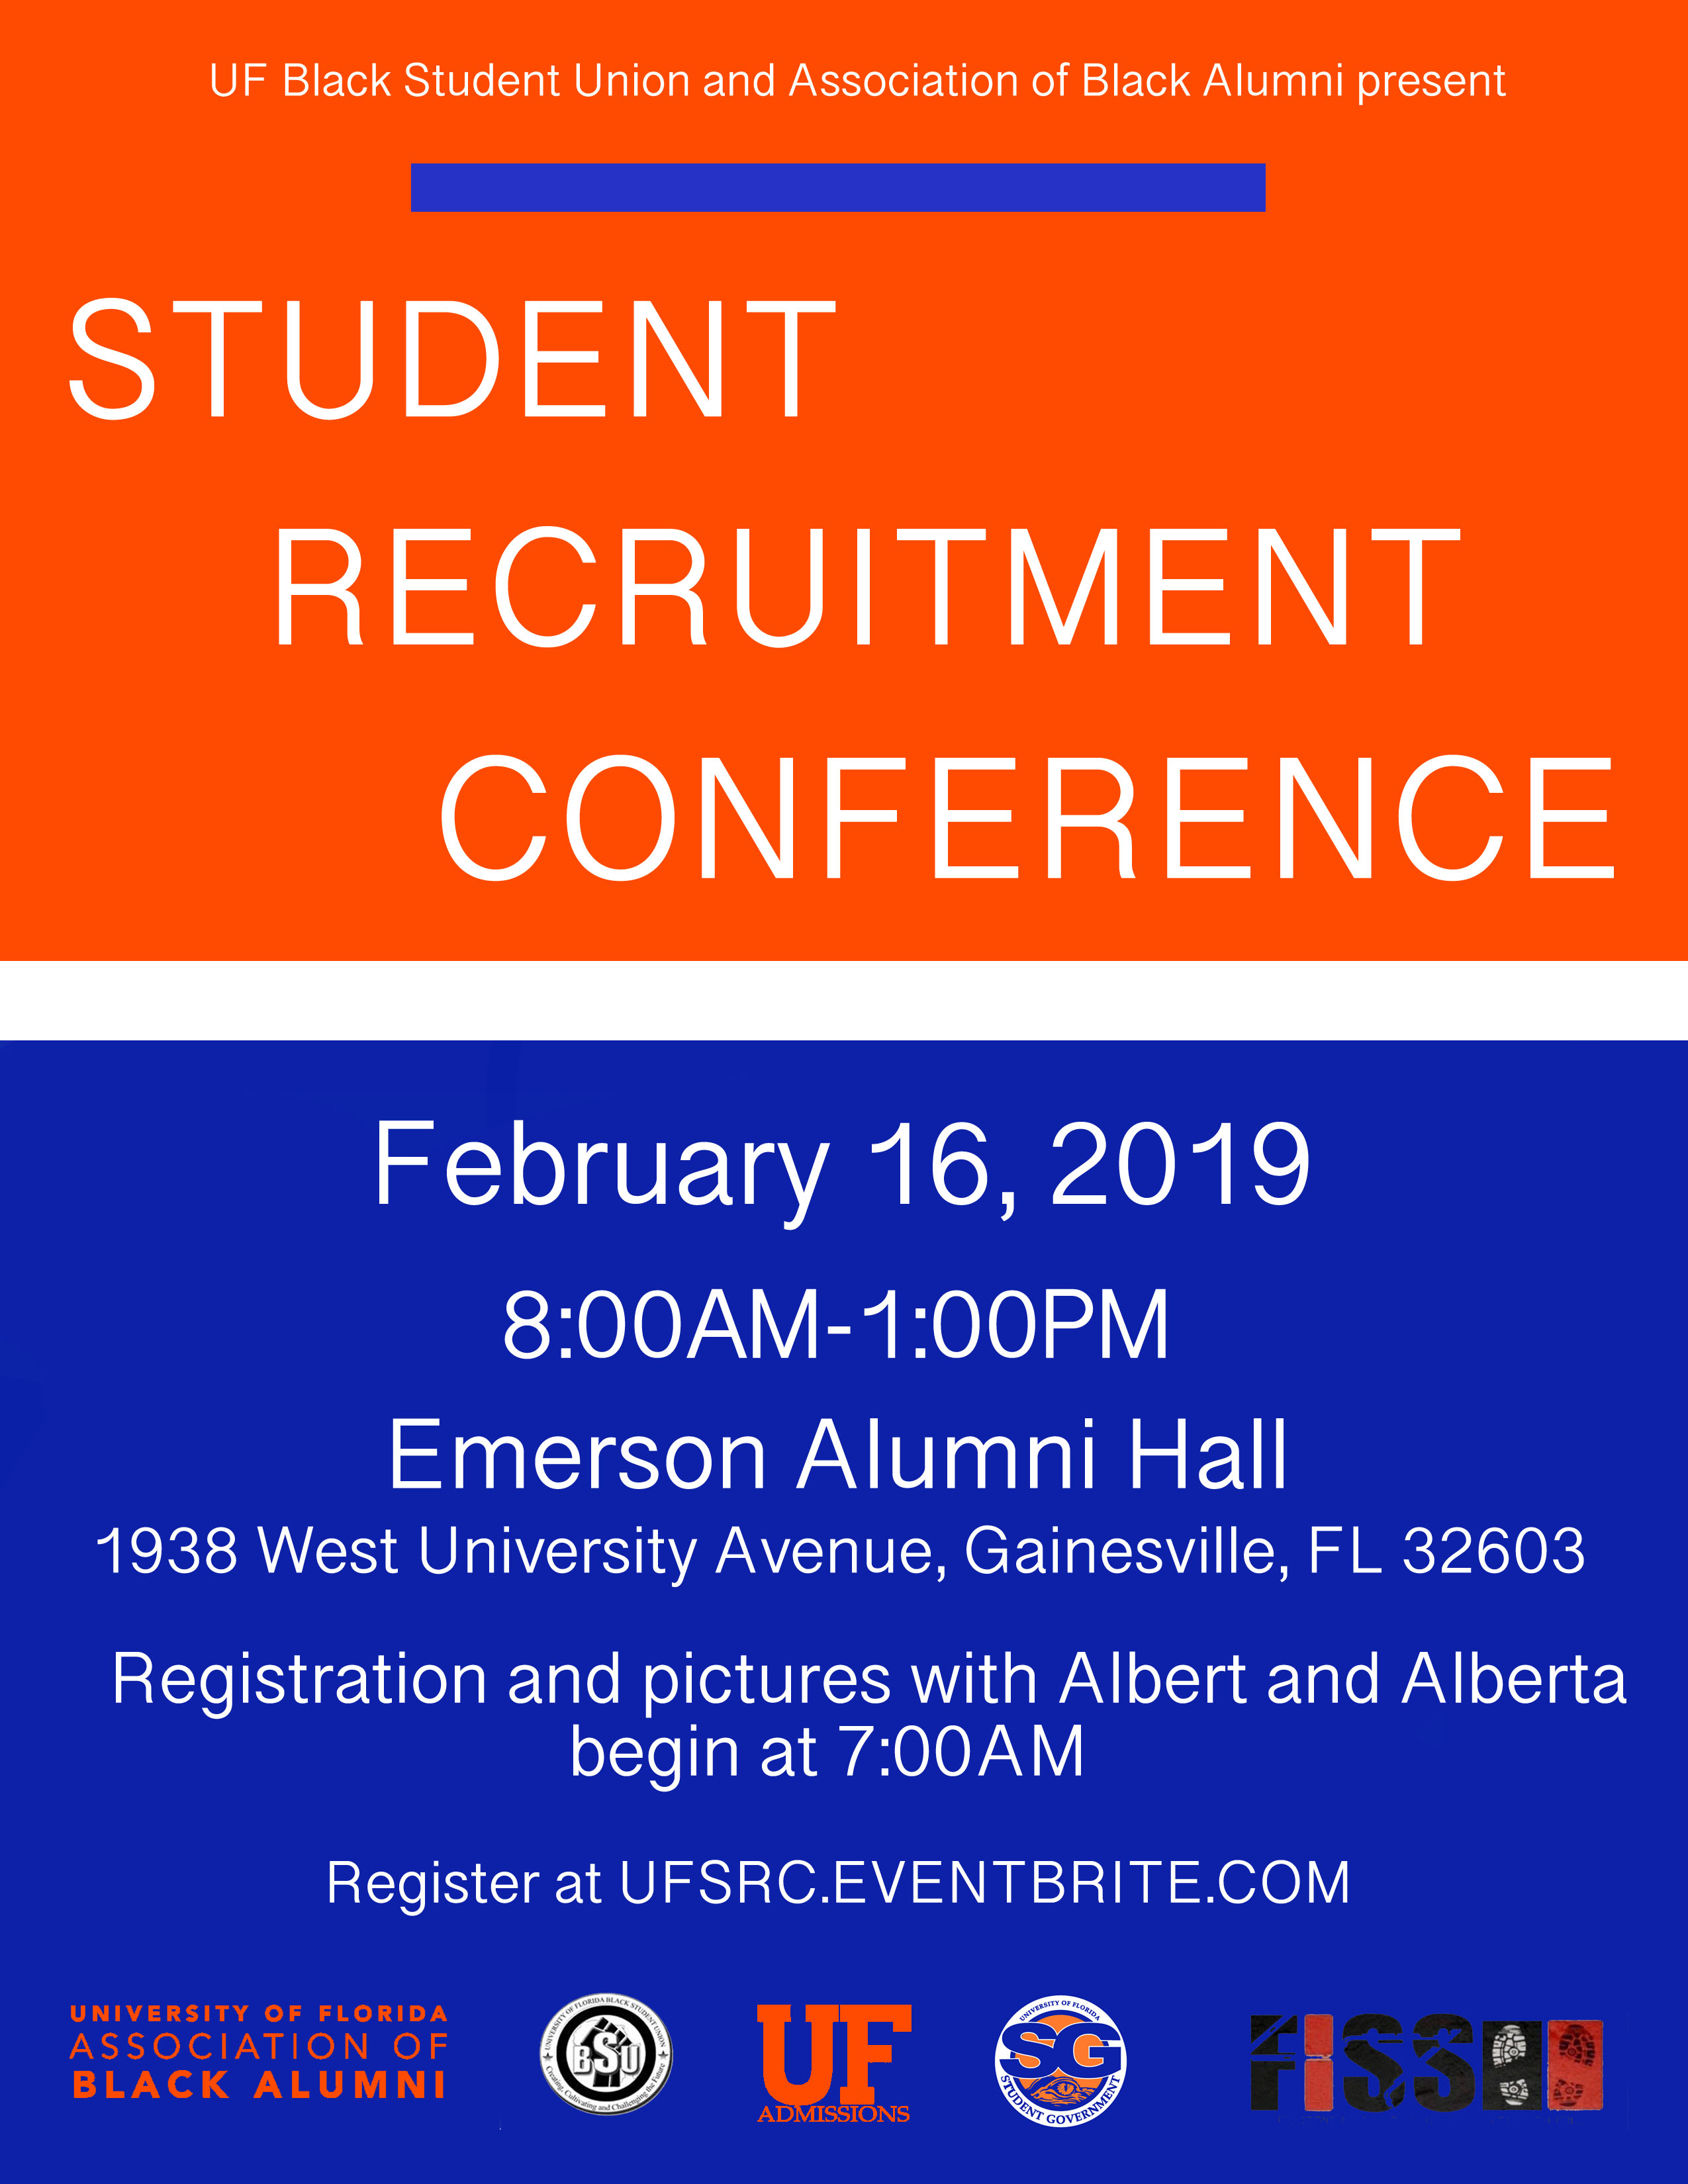 UF Black Student Union and Association of Black Alumni Present Student Recruitment Conference on February 16, 2019 at 7 AM